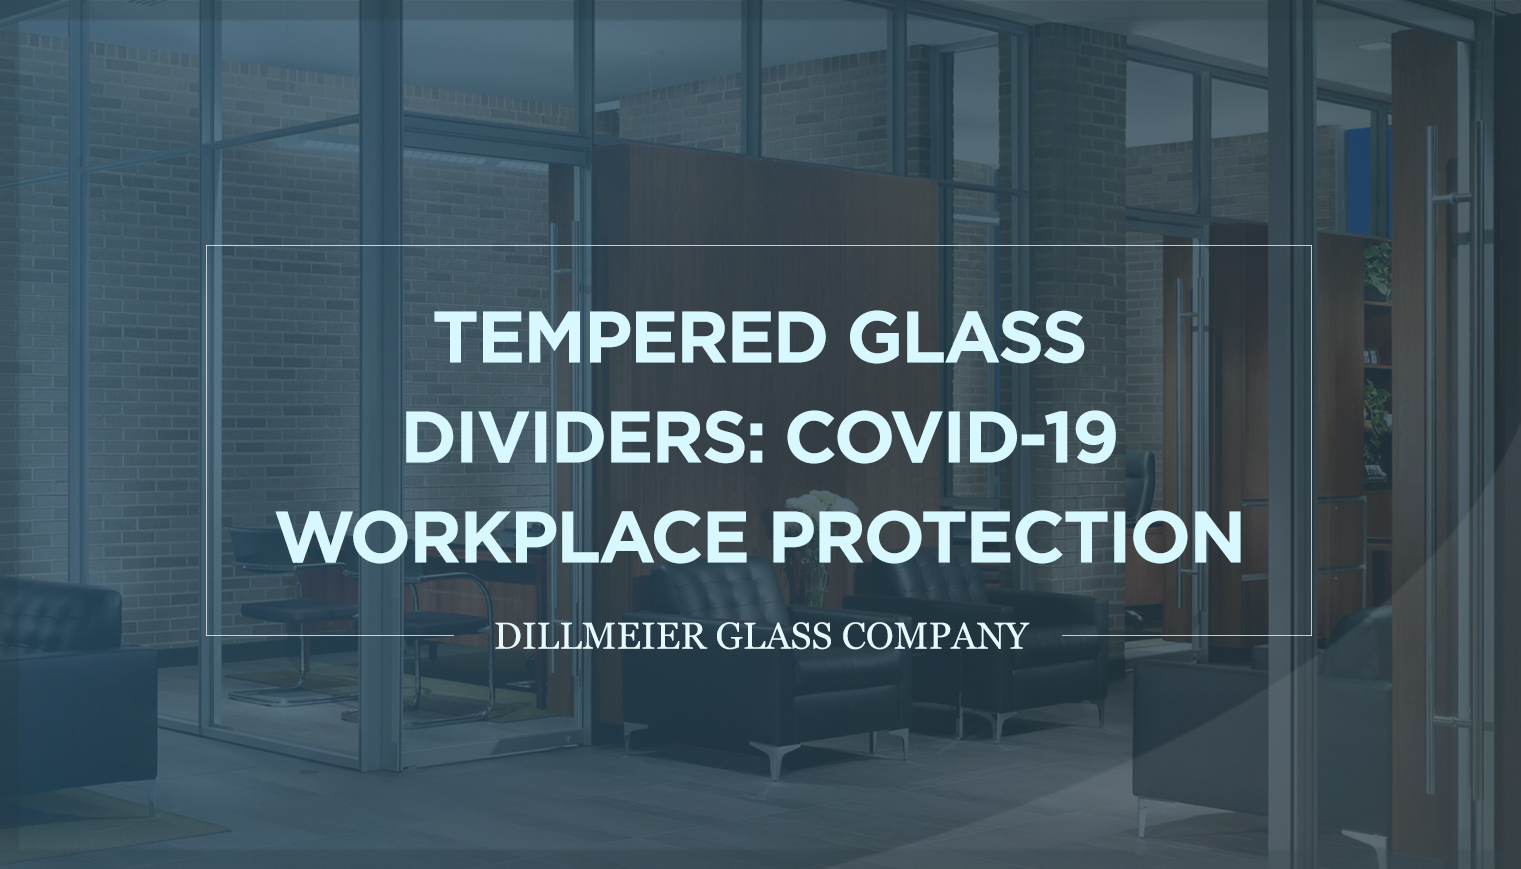 Tempered Glass Dividers: COVID-19 Workplace Protection